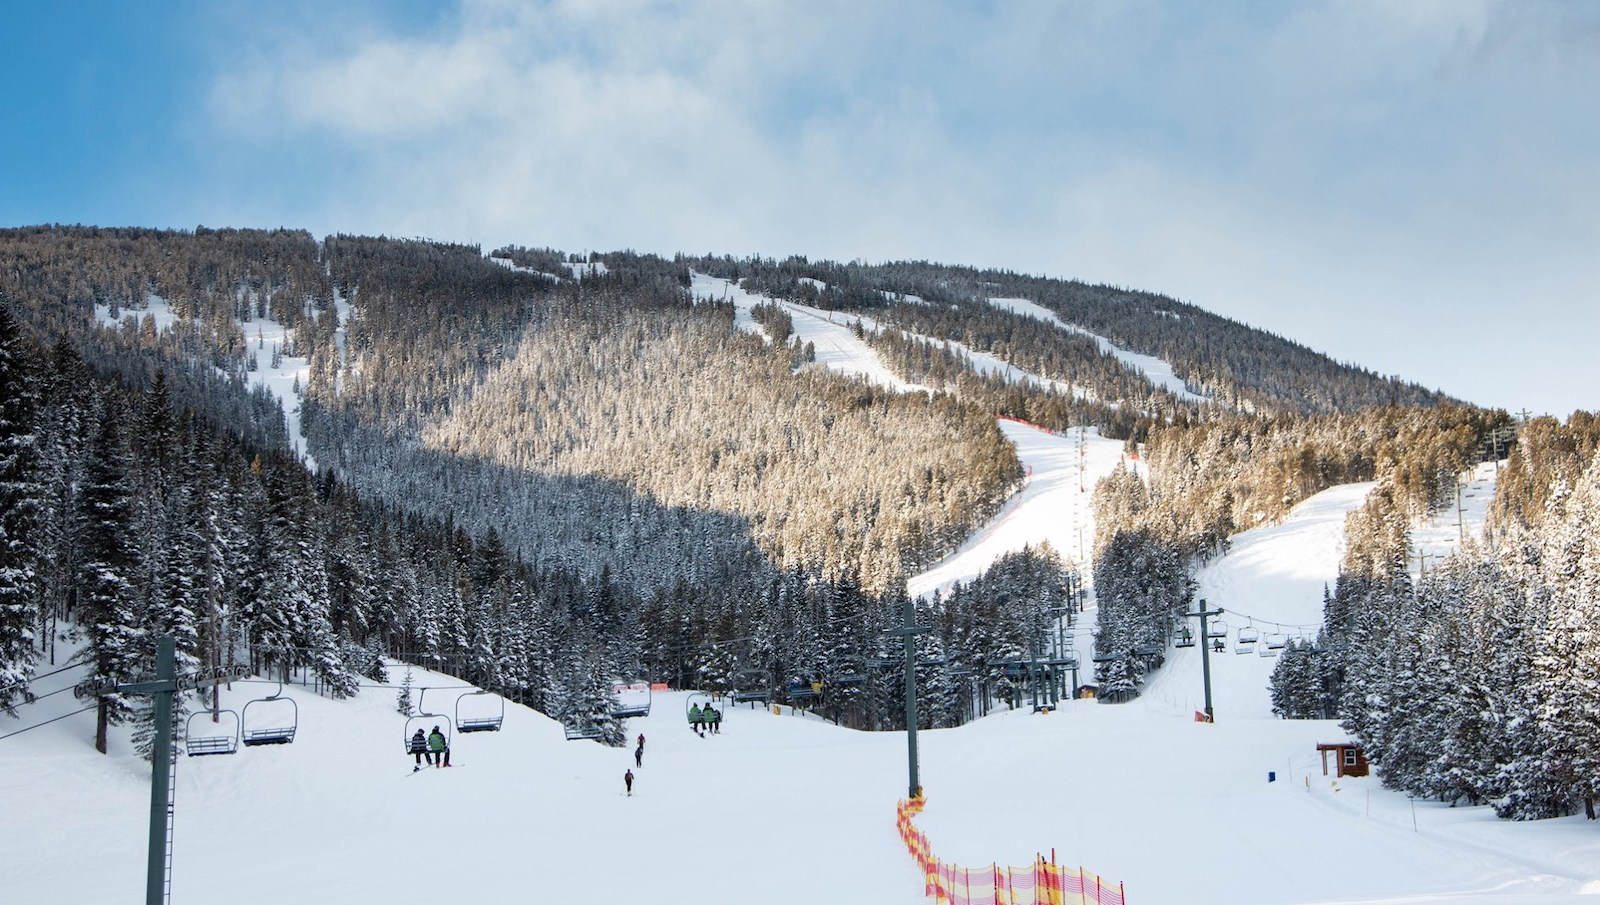 Image of skiers and snowboarders on the chairlift at Red Lodge Mountain, Wyoming